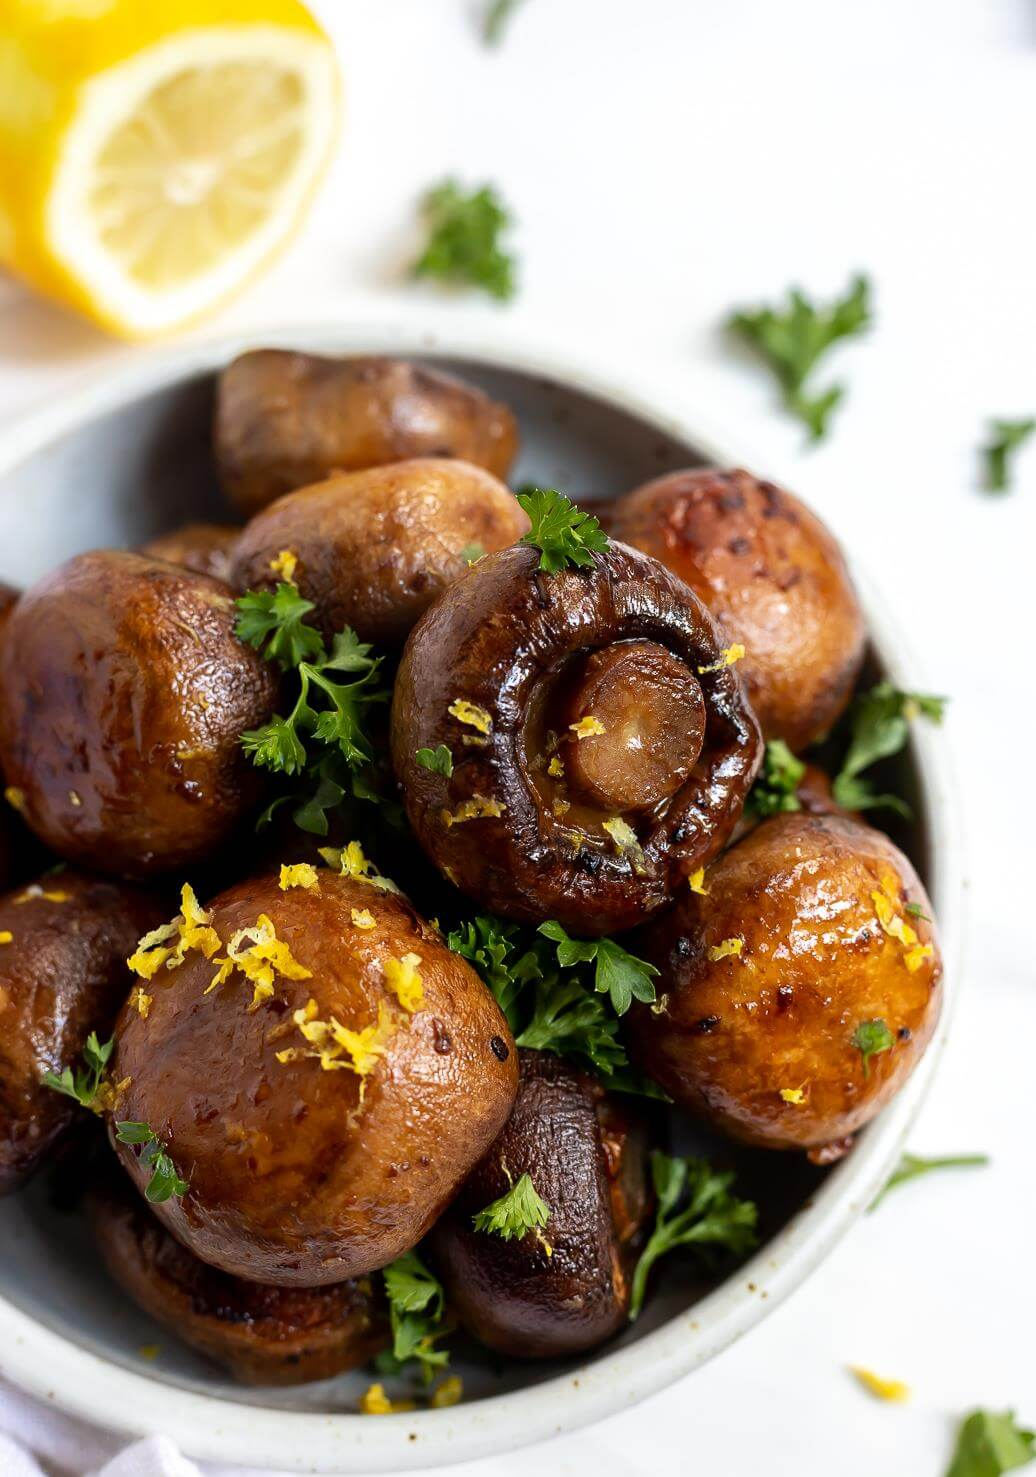 brown roasted garlic mushrooms topped with parsley and lemon zest